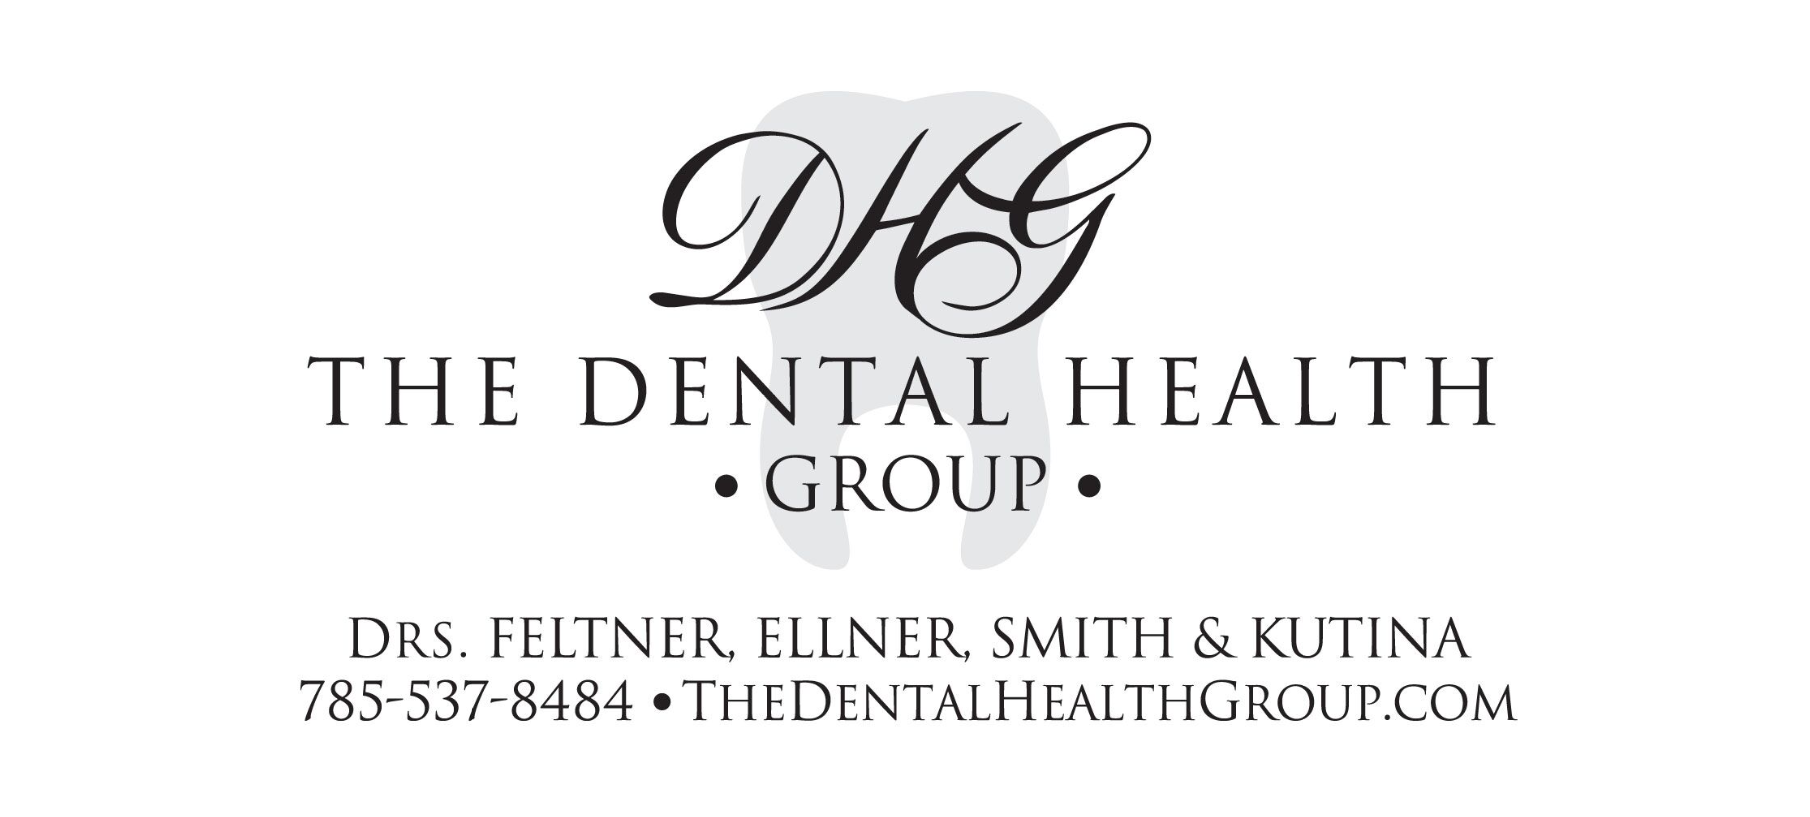 The Dental Health Group